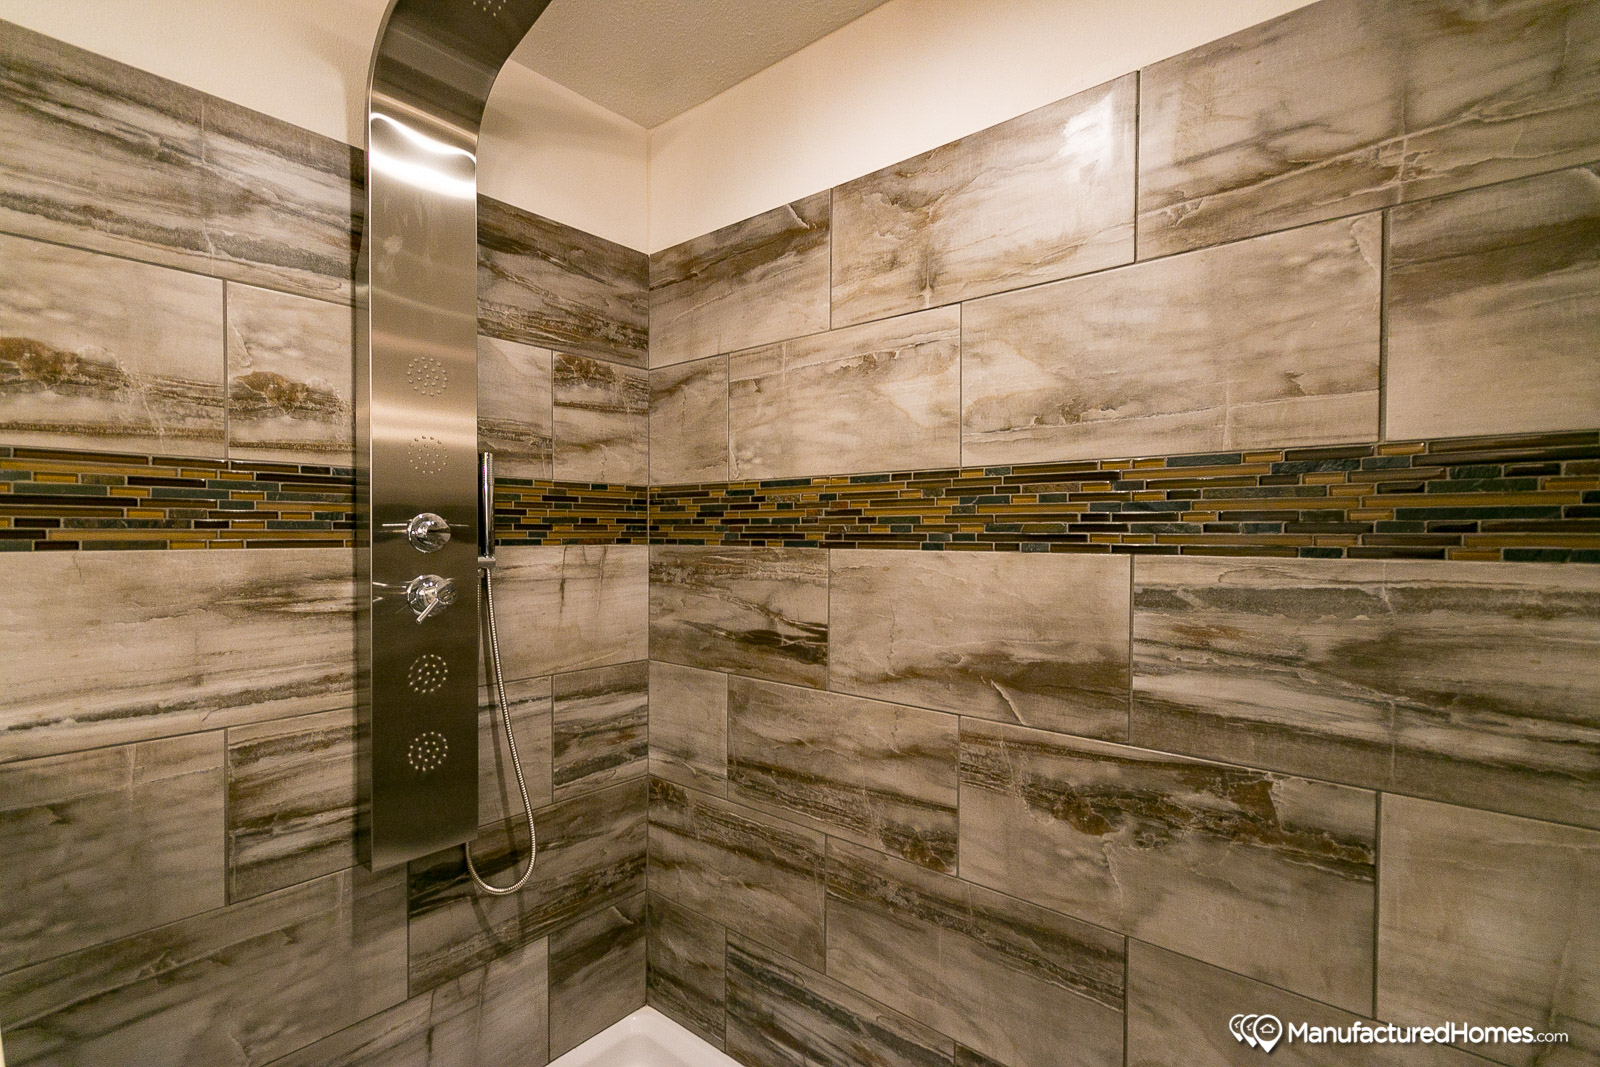 Showcase MW / The Blue Ridge - Bathroom